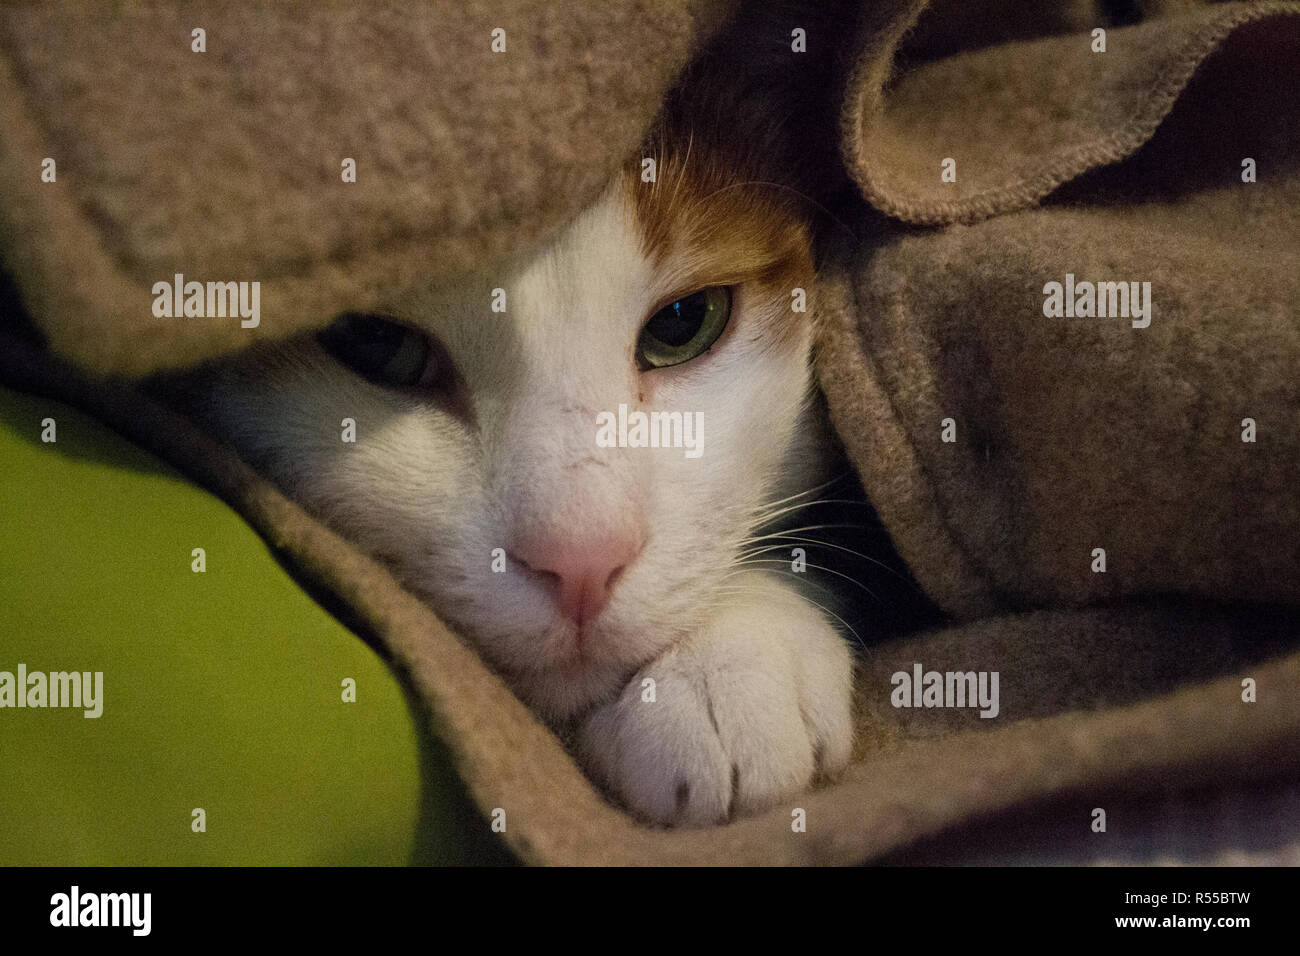 Artur, our cat is hiding in the beige wool jacket - Stock Image